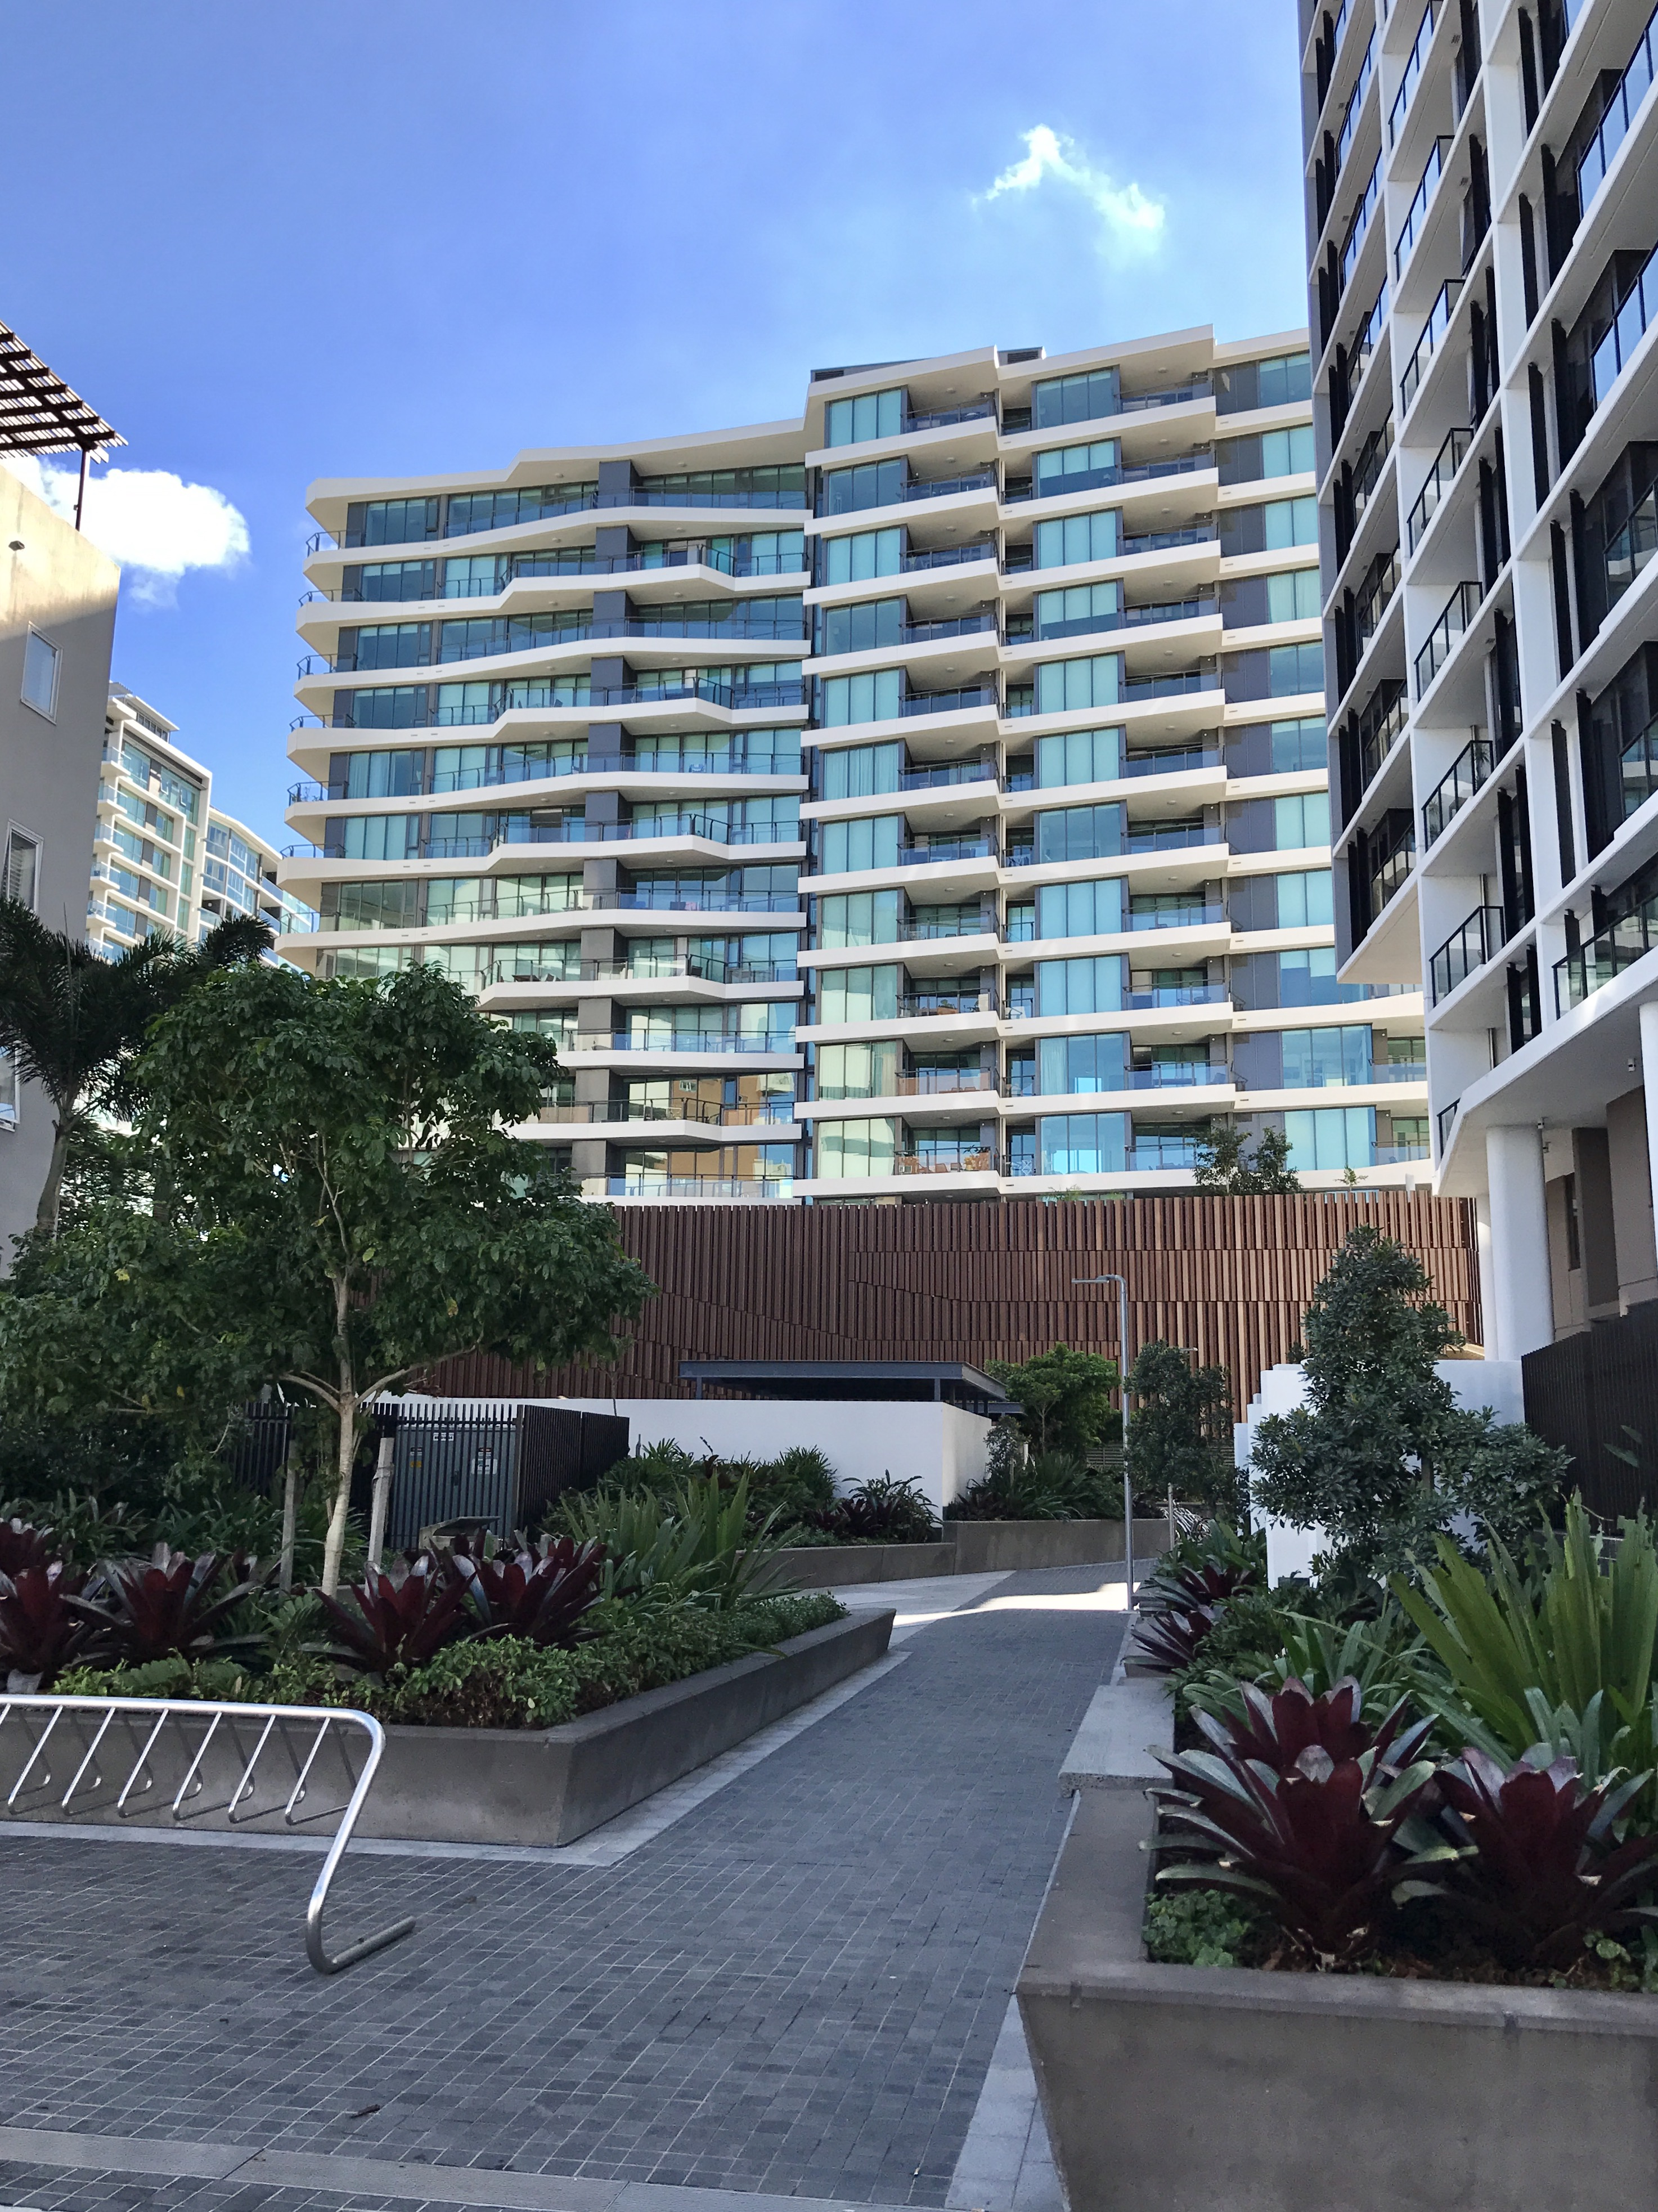 File:Apartment buildings in Portside Wharf, Brisbane 2017 ...